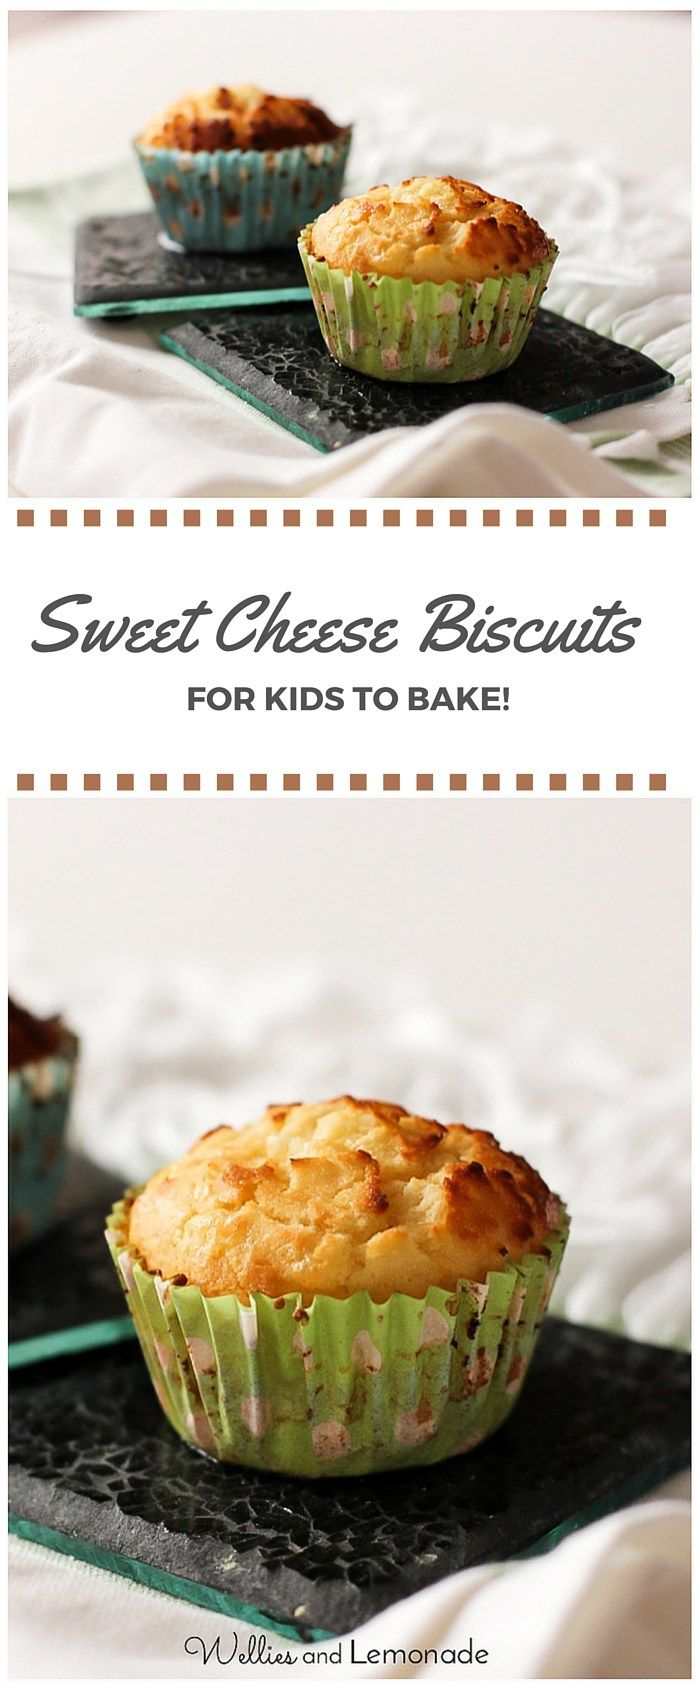 Delicious, one bowl recipe sweet cheese biscuits which you will enjoy baking with your little one! find it over at http://www.welliesandlemonade.com/recipe/sweet-cheese-biscuits-kids-bake